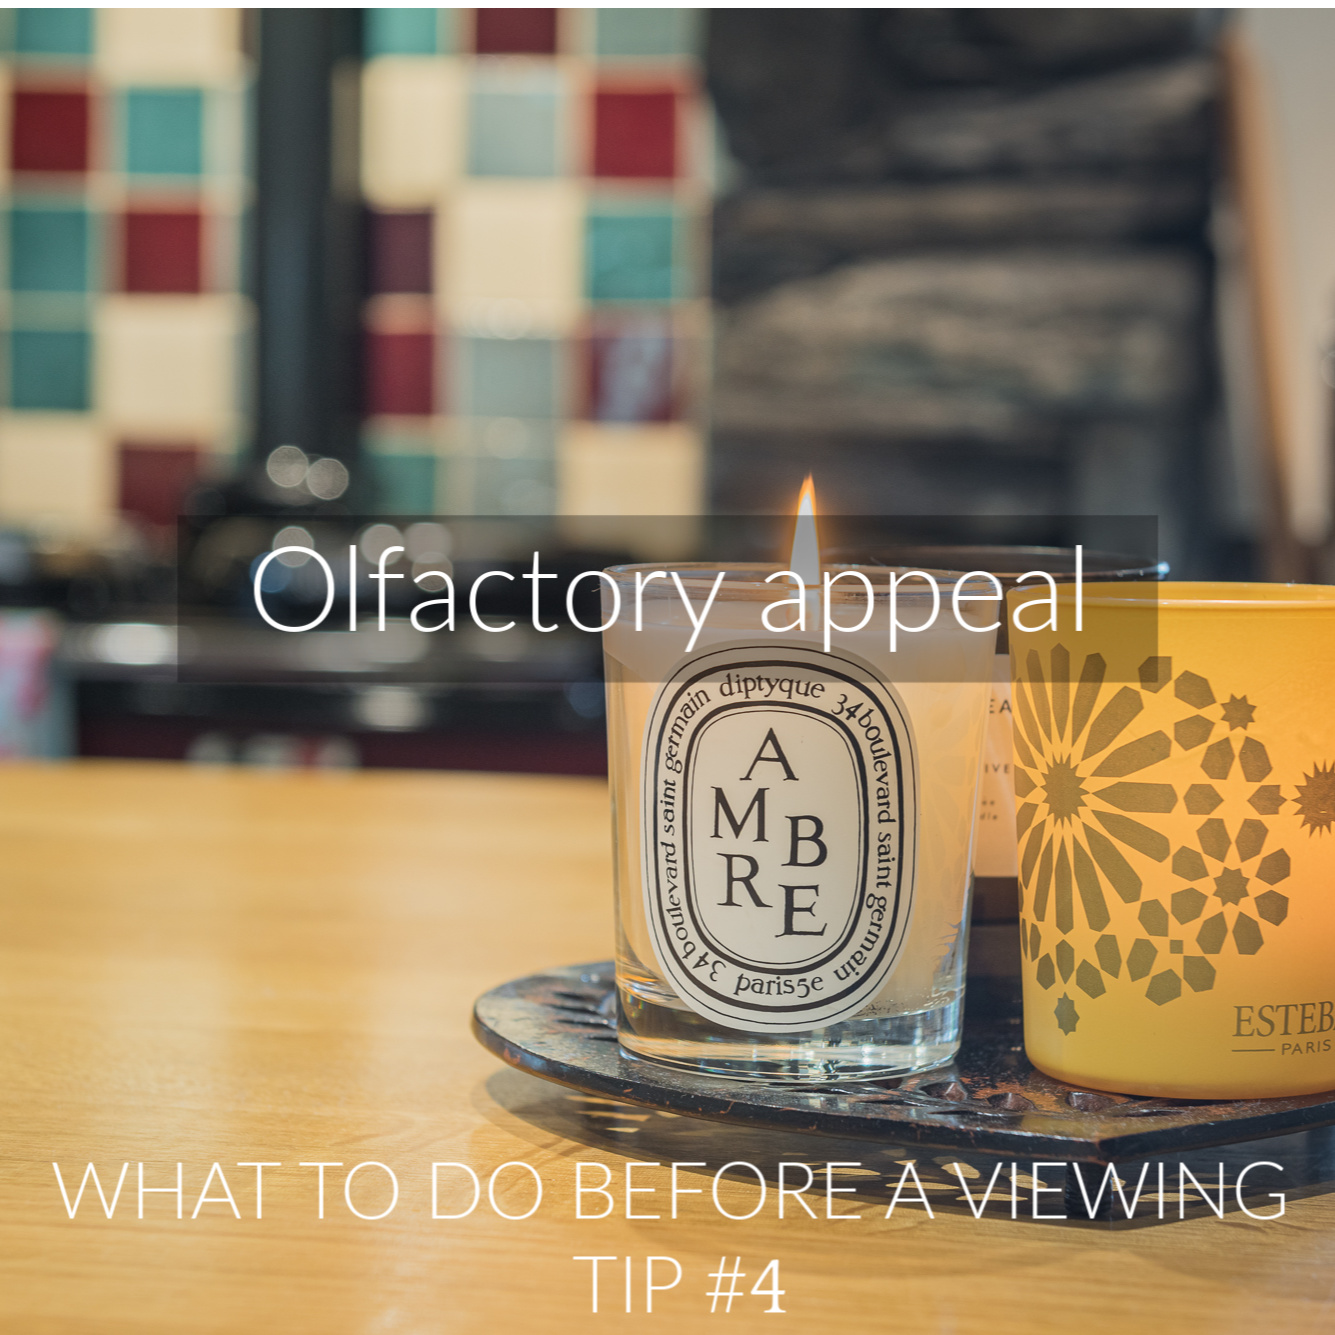 tg4-olfactory-appeal